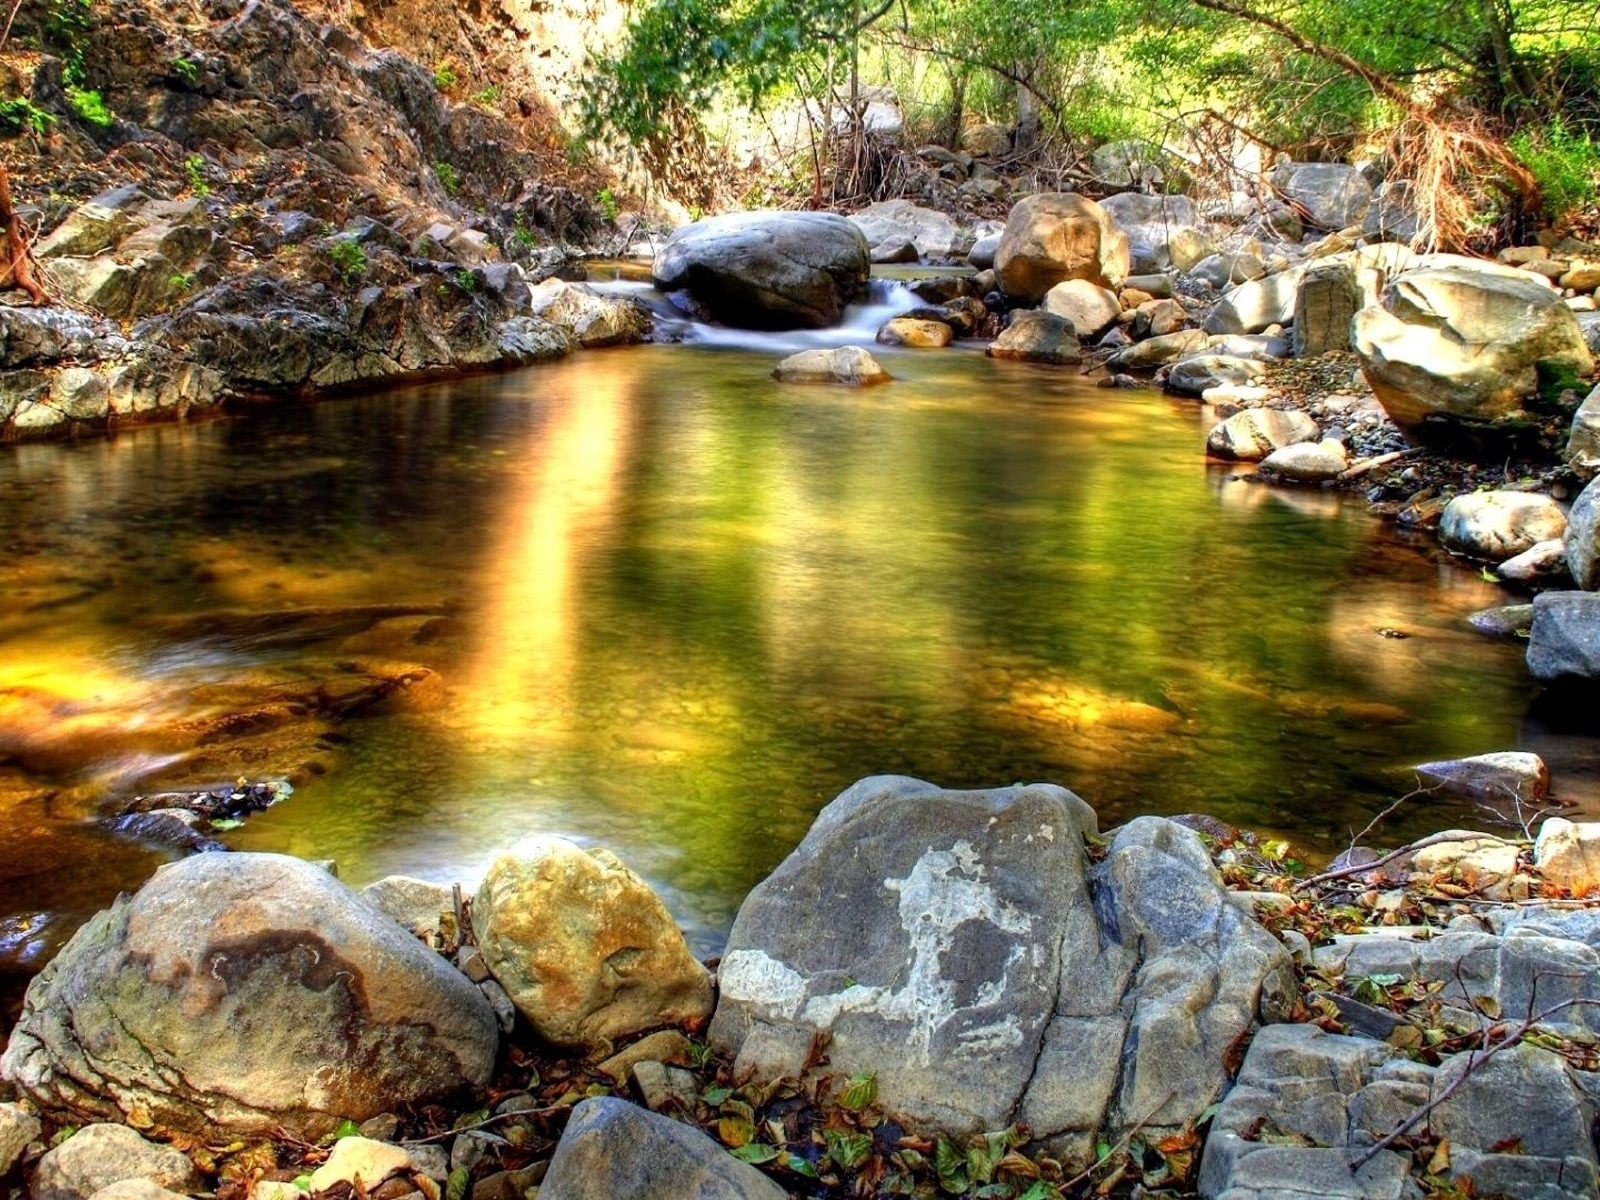 New Hd Wallpapers For Pc Free Download Mountain Stream Rocks Wallpaper 92641 Wallpapers13 Com